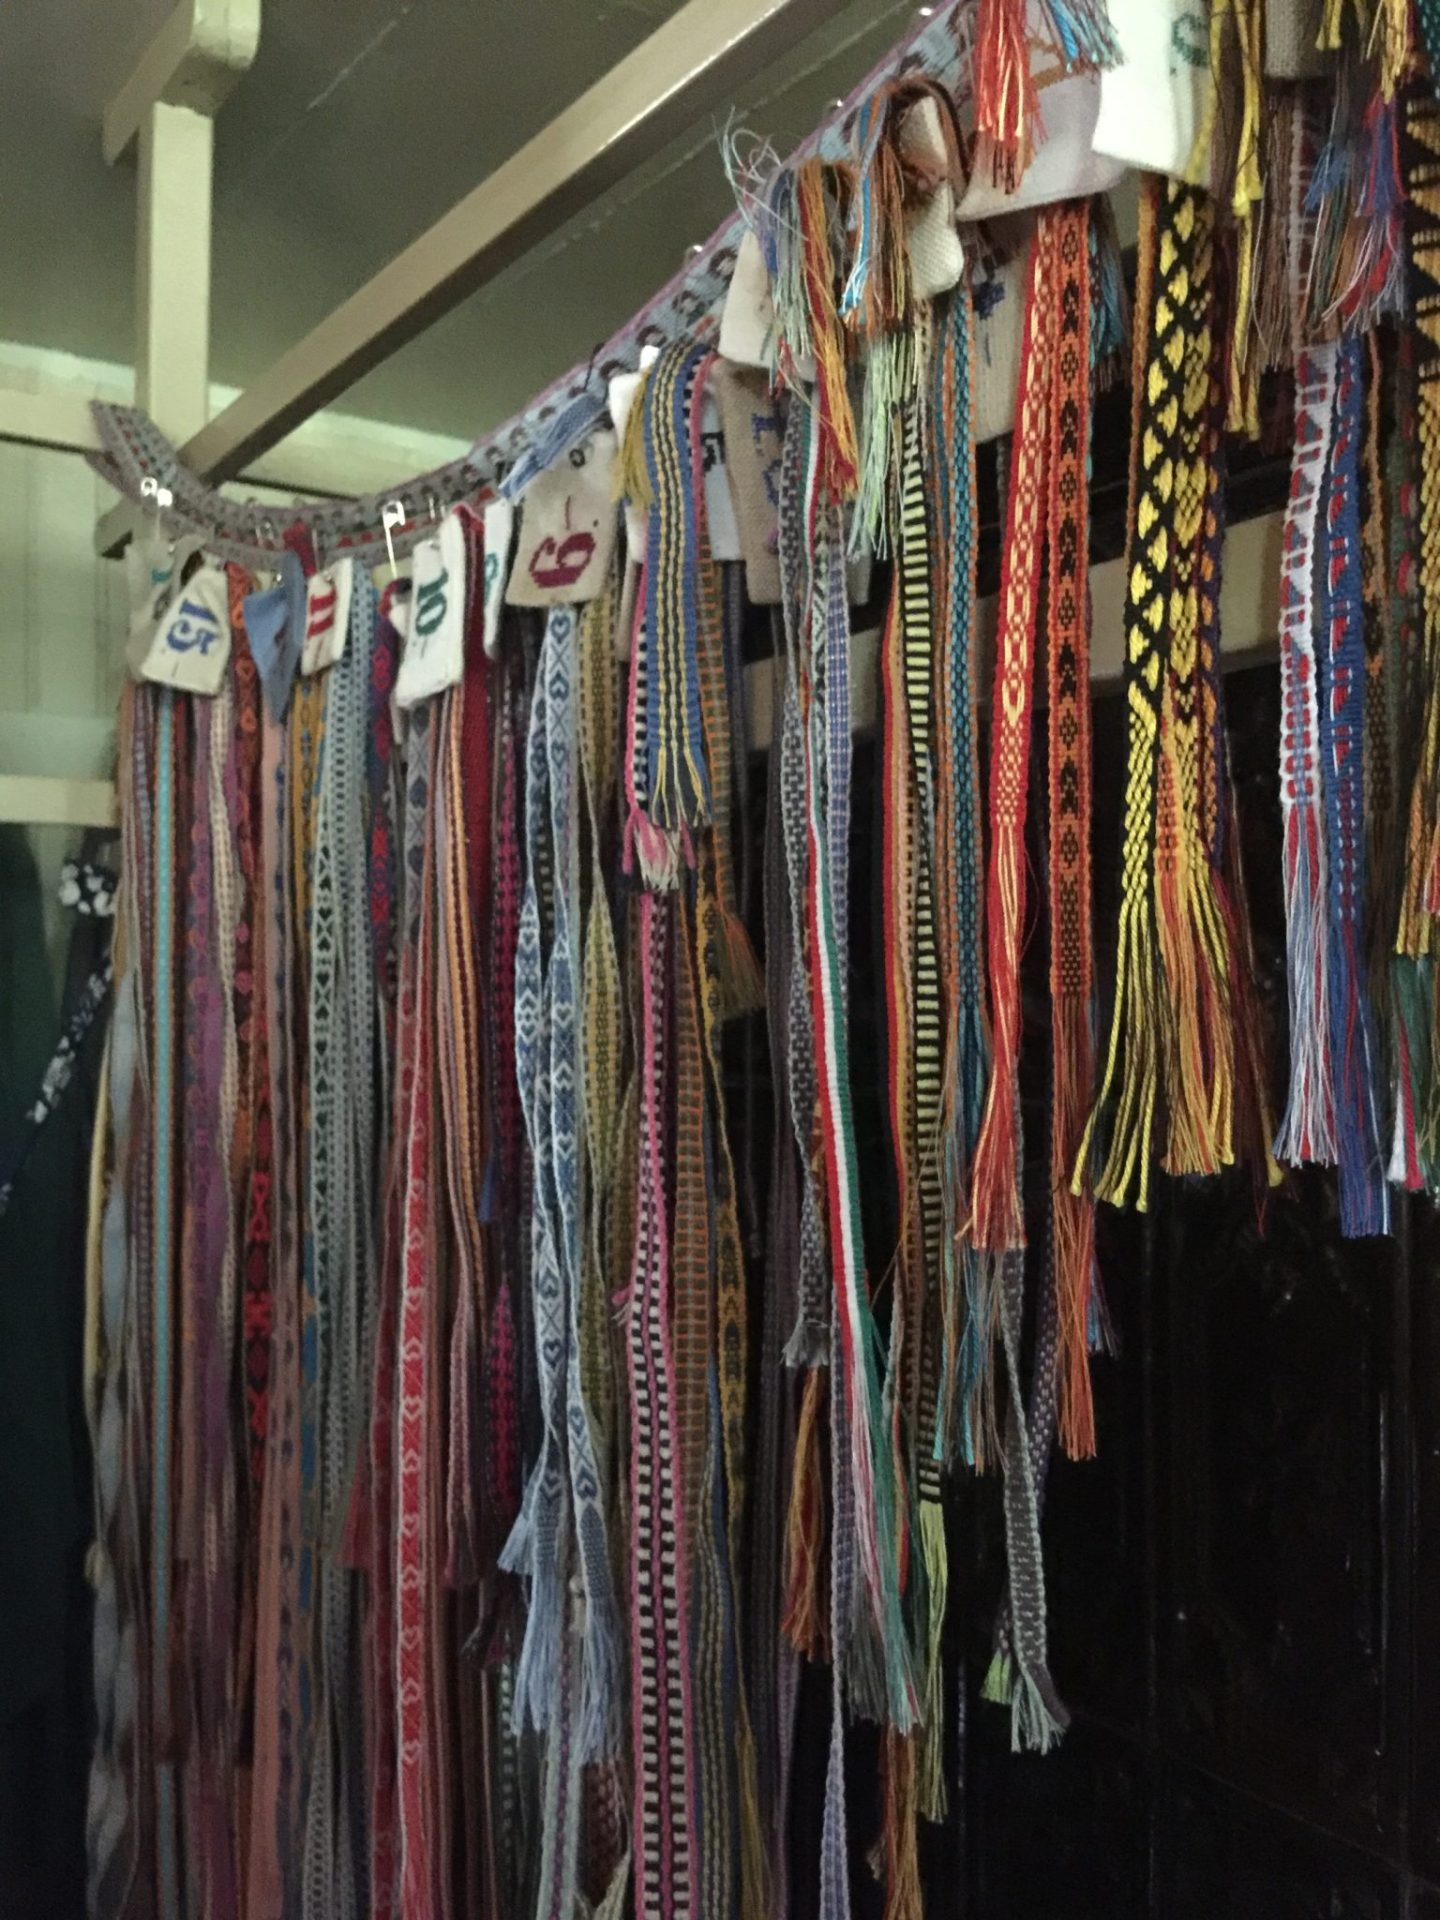 Incredibly detailed ribbons, woven by local craftspeople.